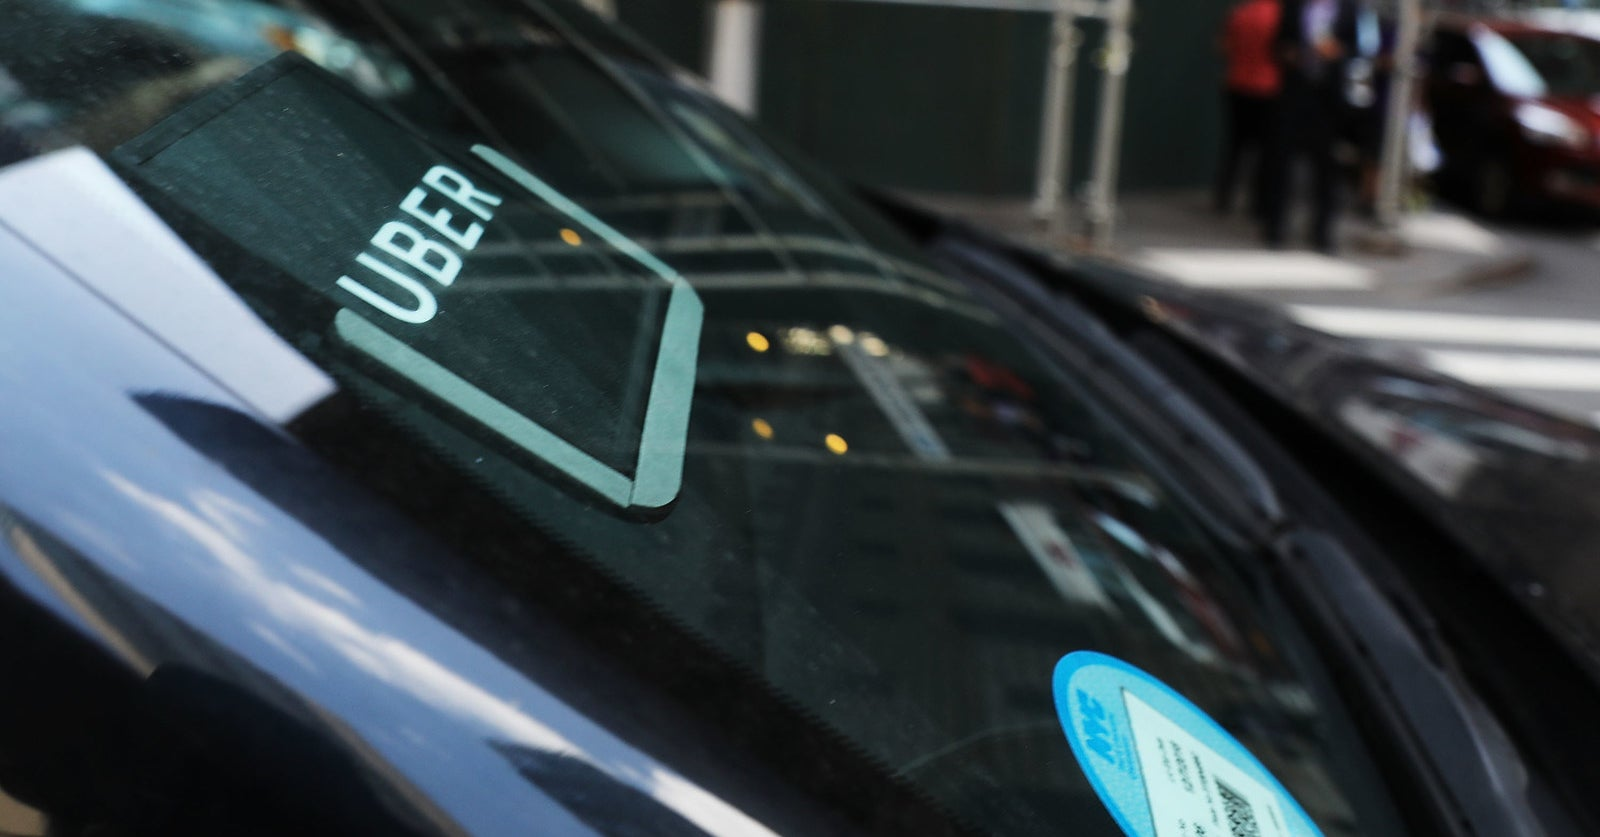 should you tip uber and lyft drivers